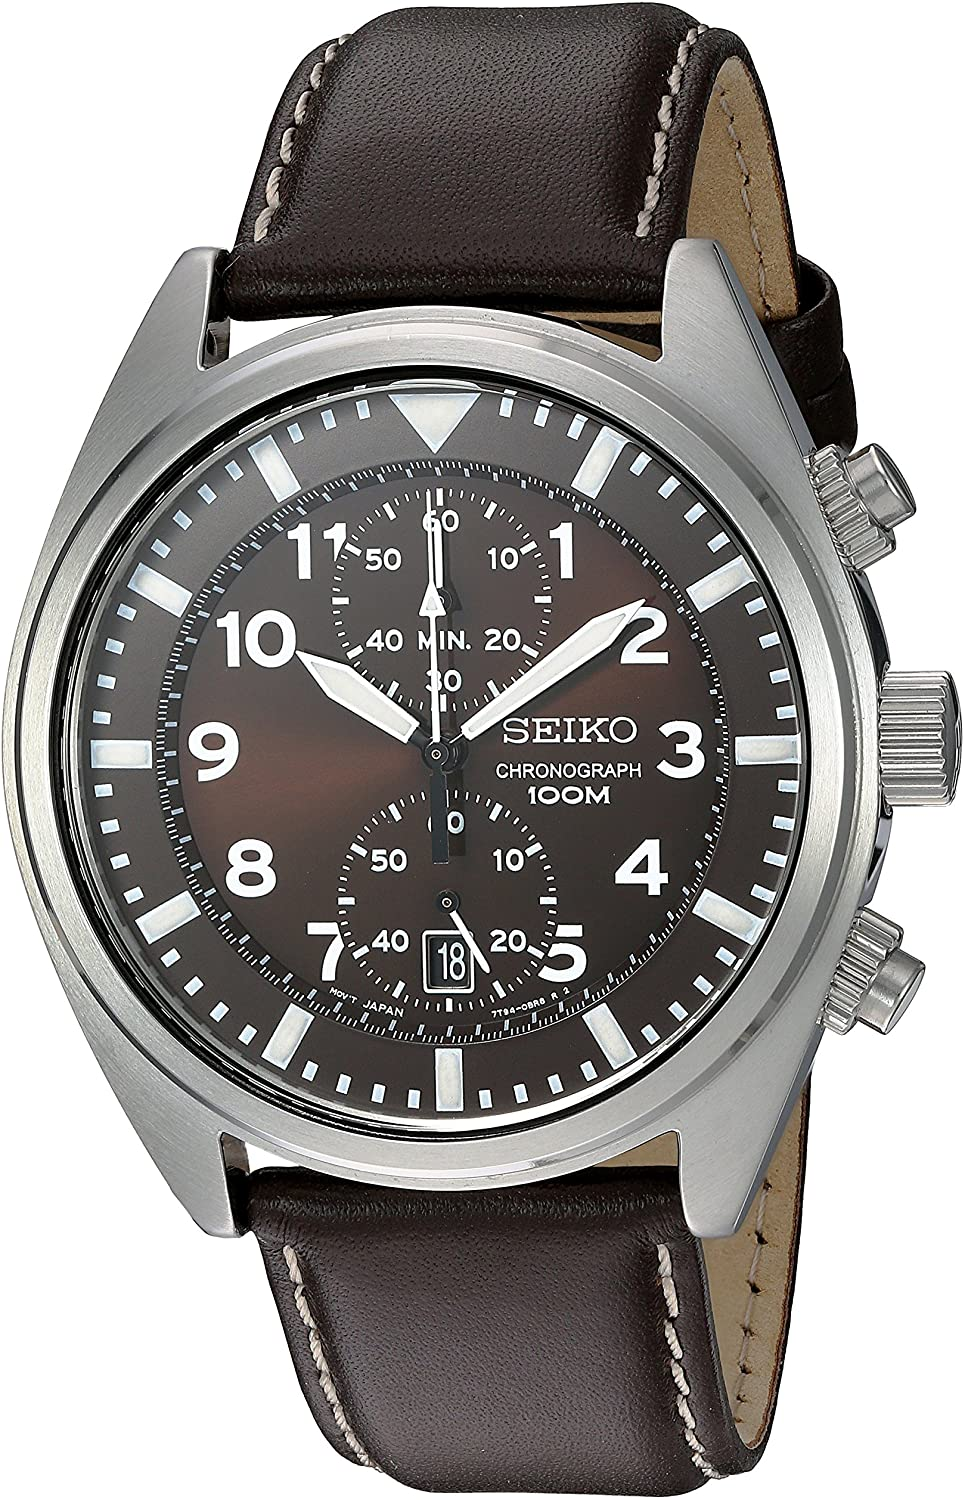 Seiko Men s SNN241 Stainless Steel Watch with Brown Leather Band